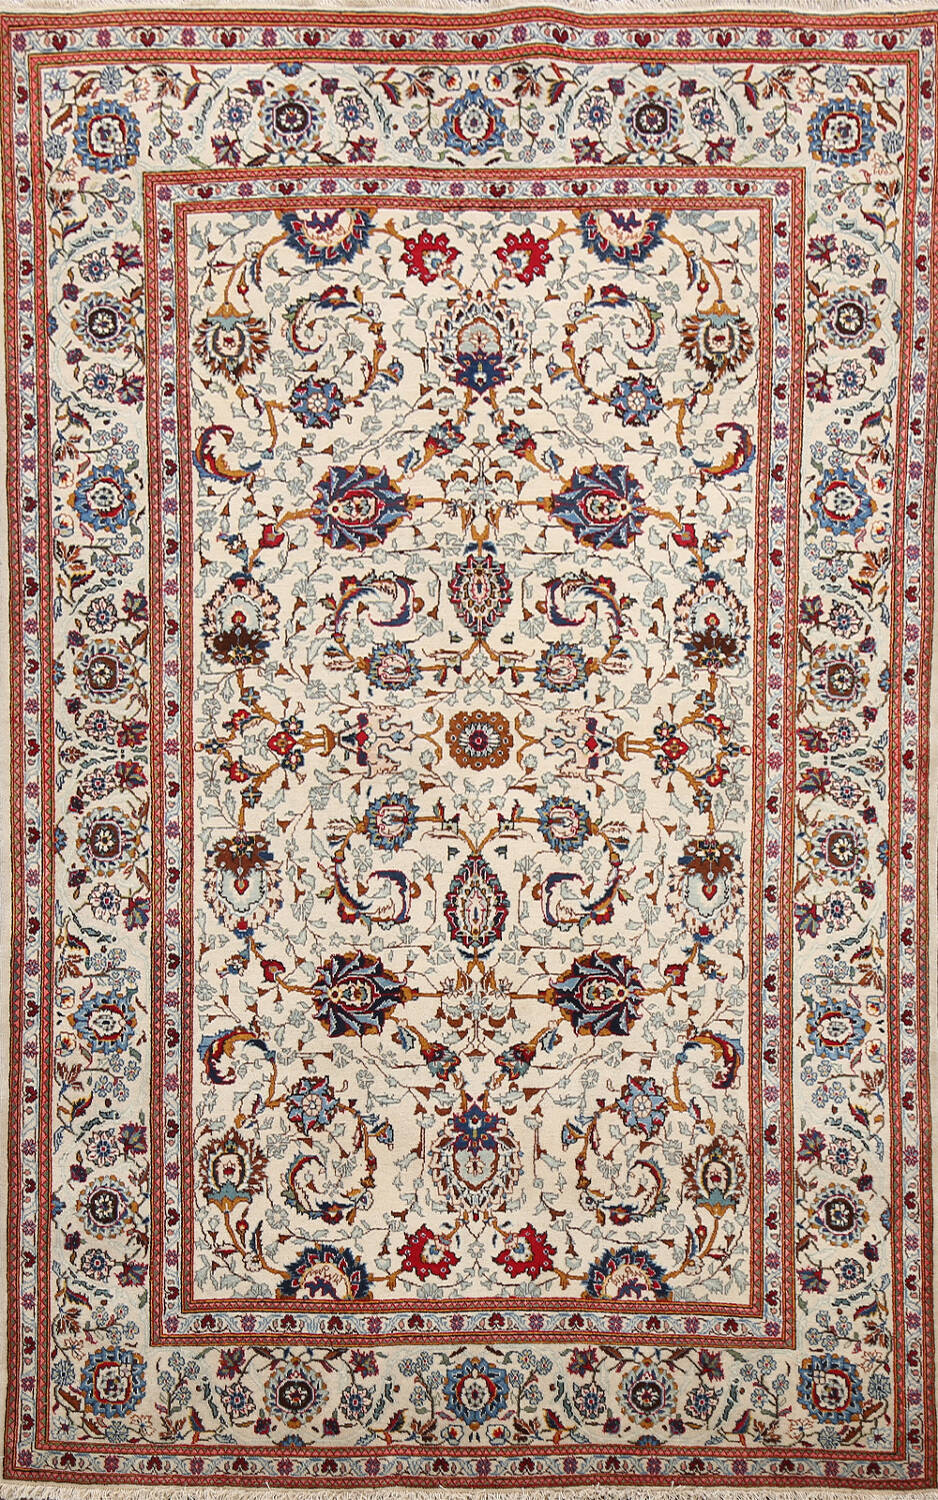 100% Vegetable Dye Floral Kashan Persian Area Rug 4x7 image 1